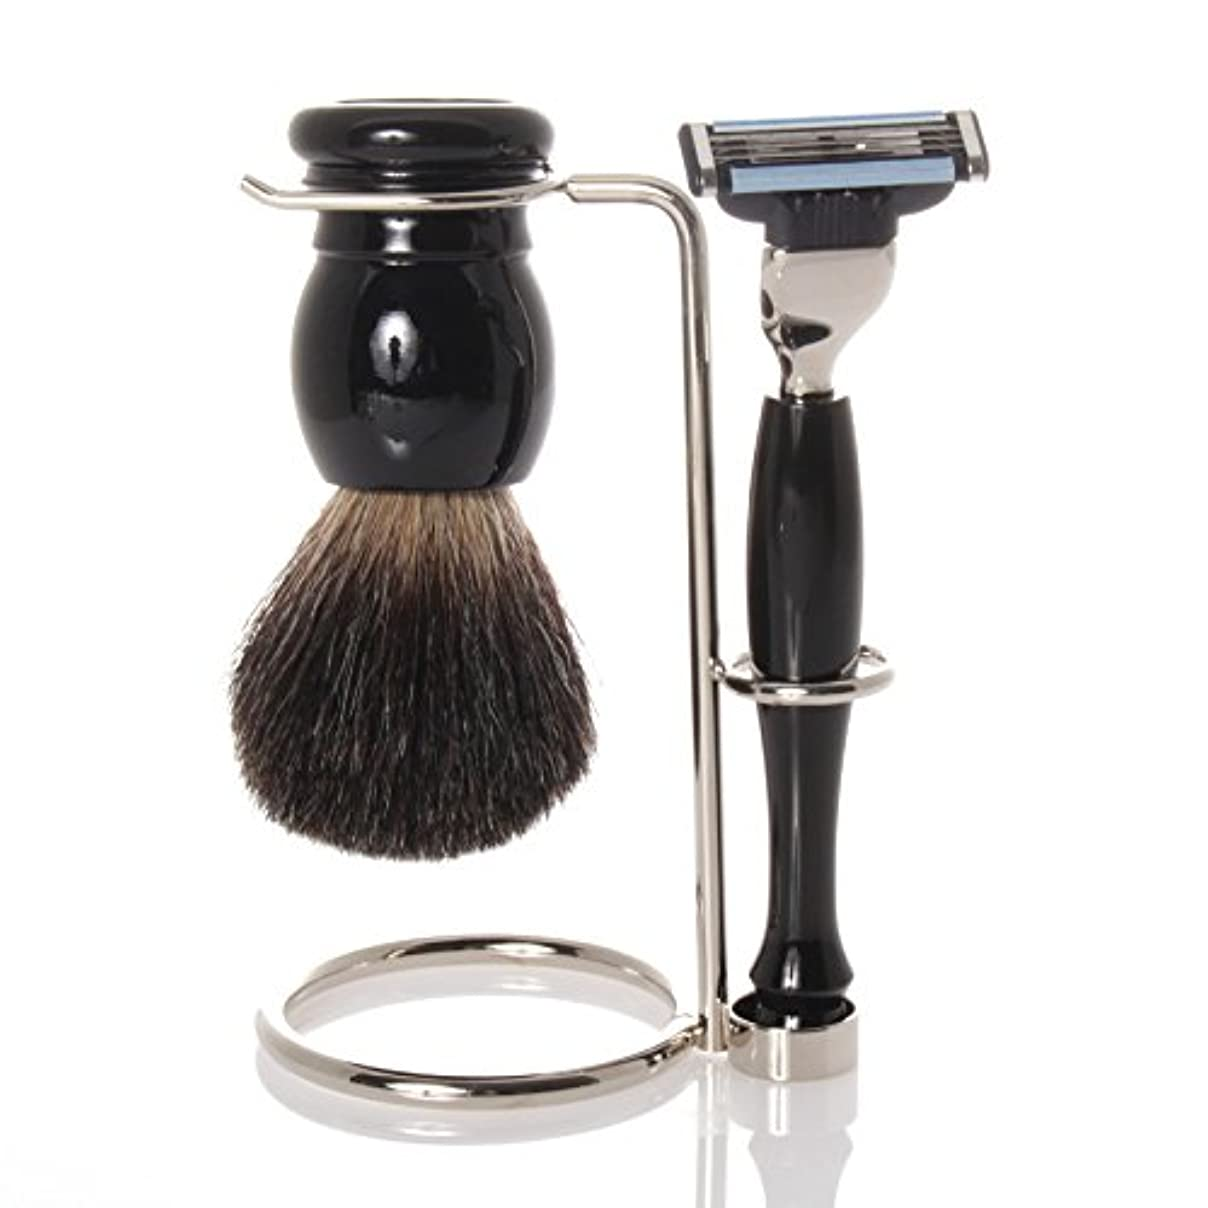 ベルベット伝統寮Shaving set with holder, grey badger brush, razor - Hans Baier Exclusive